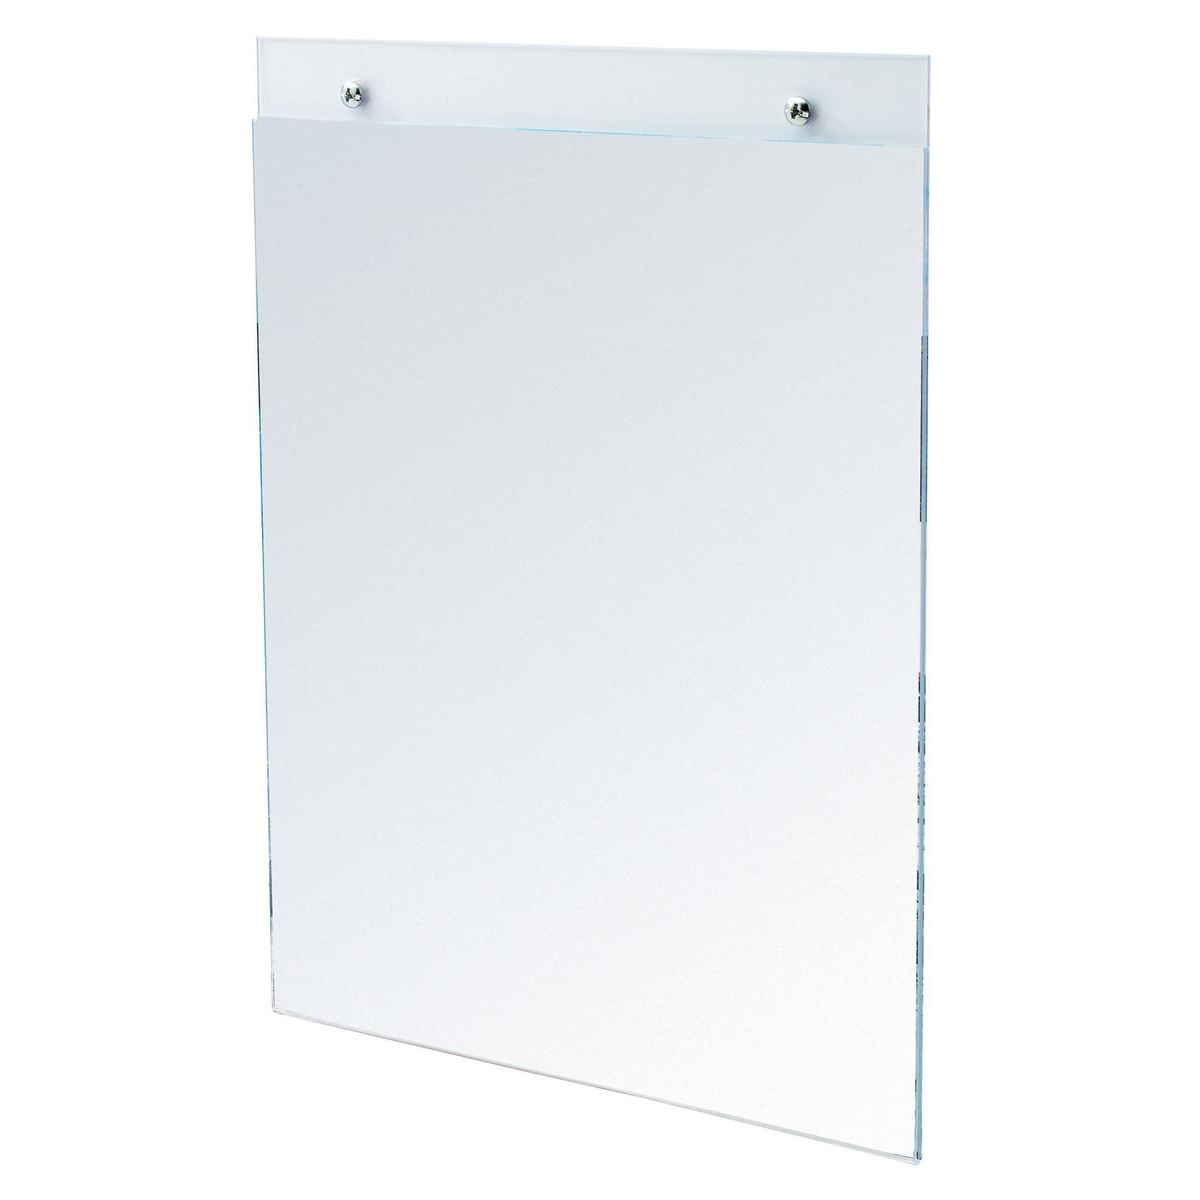 Wall Sign Holder Pre Drilled Portrait A3 Clear